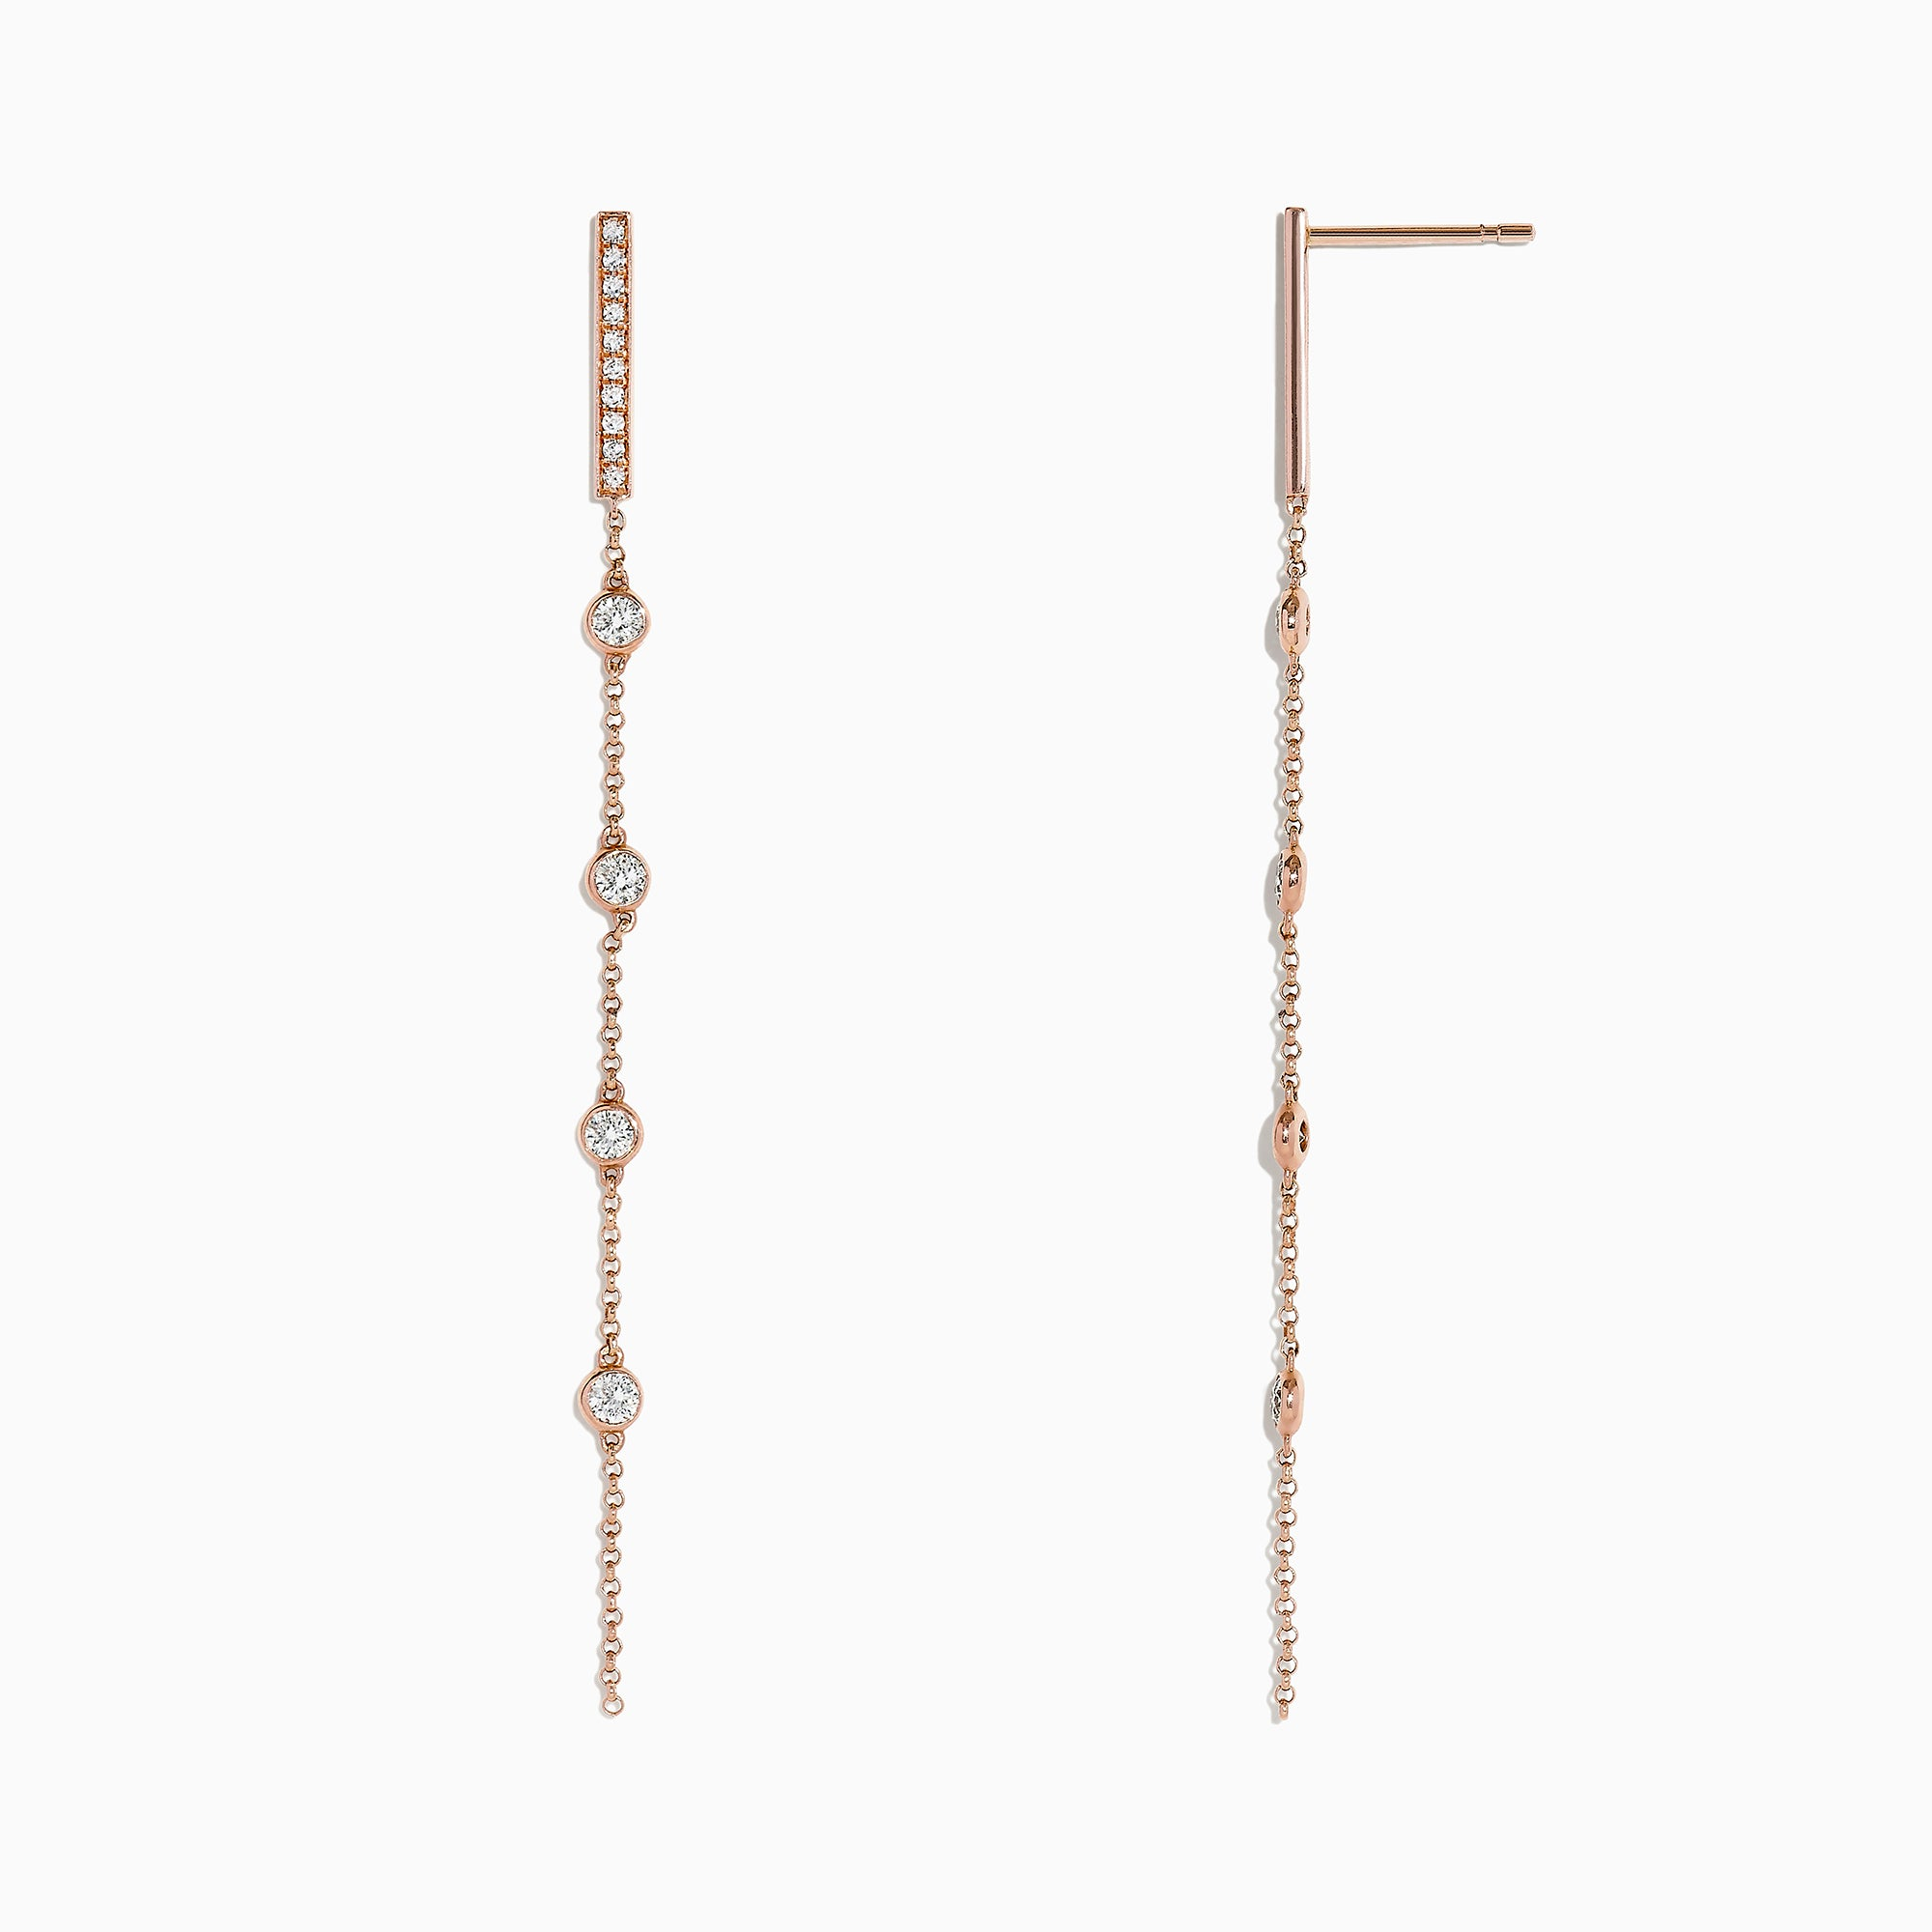 Effy Pave Rose 14K Rose Gold Diamond Station Earrings, 0.49 TCW